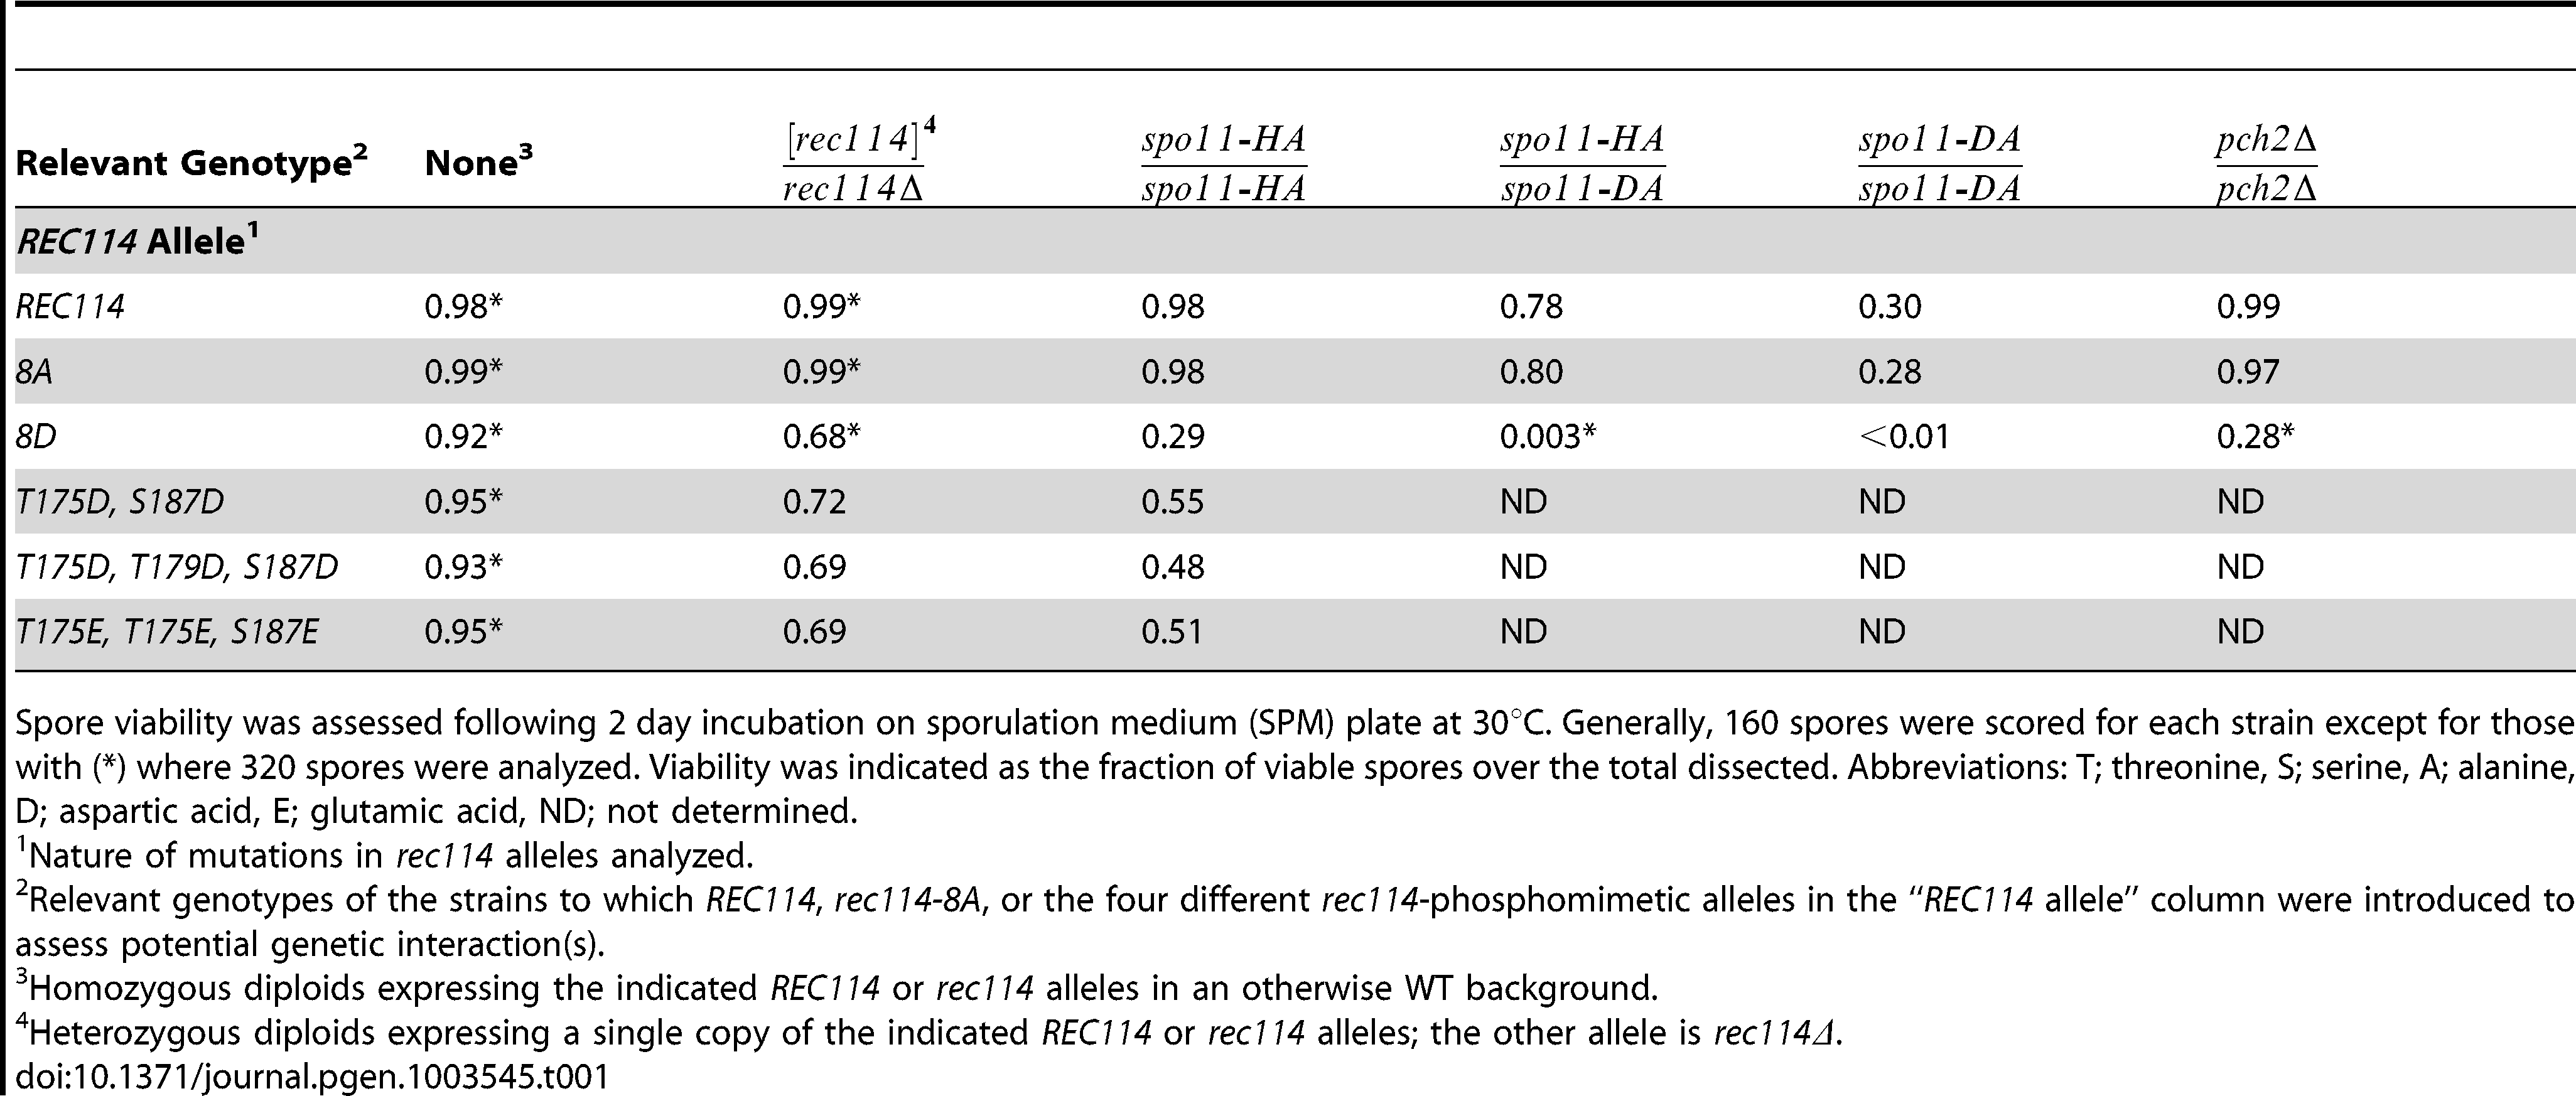 Spore viability of the different <i>rec114</i> alleles in various genetic backgrounds.